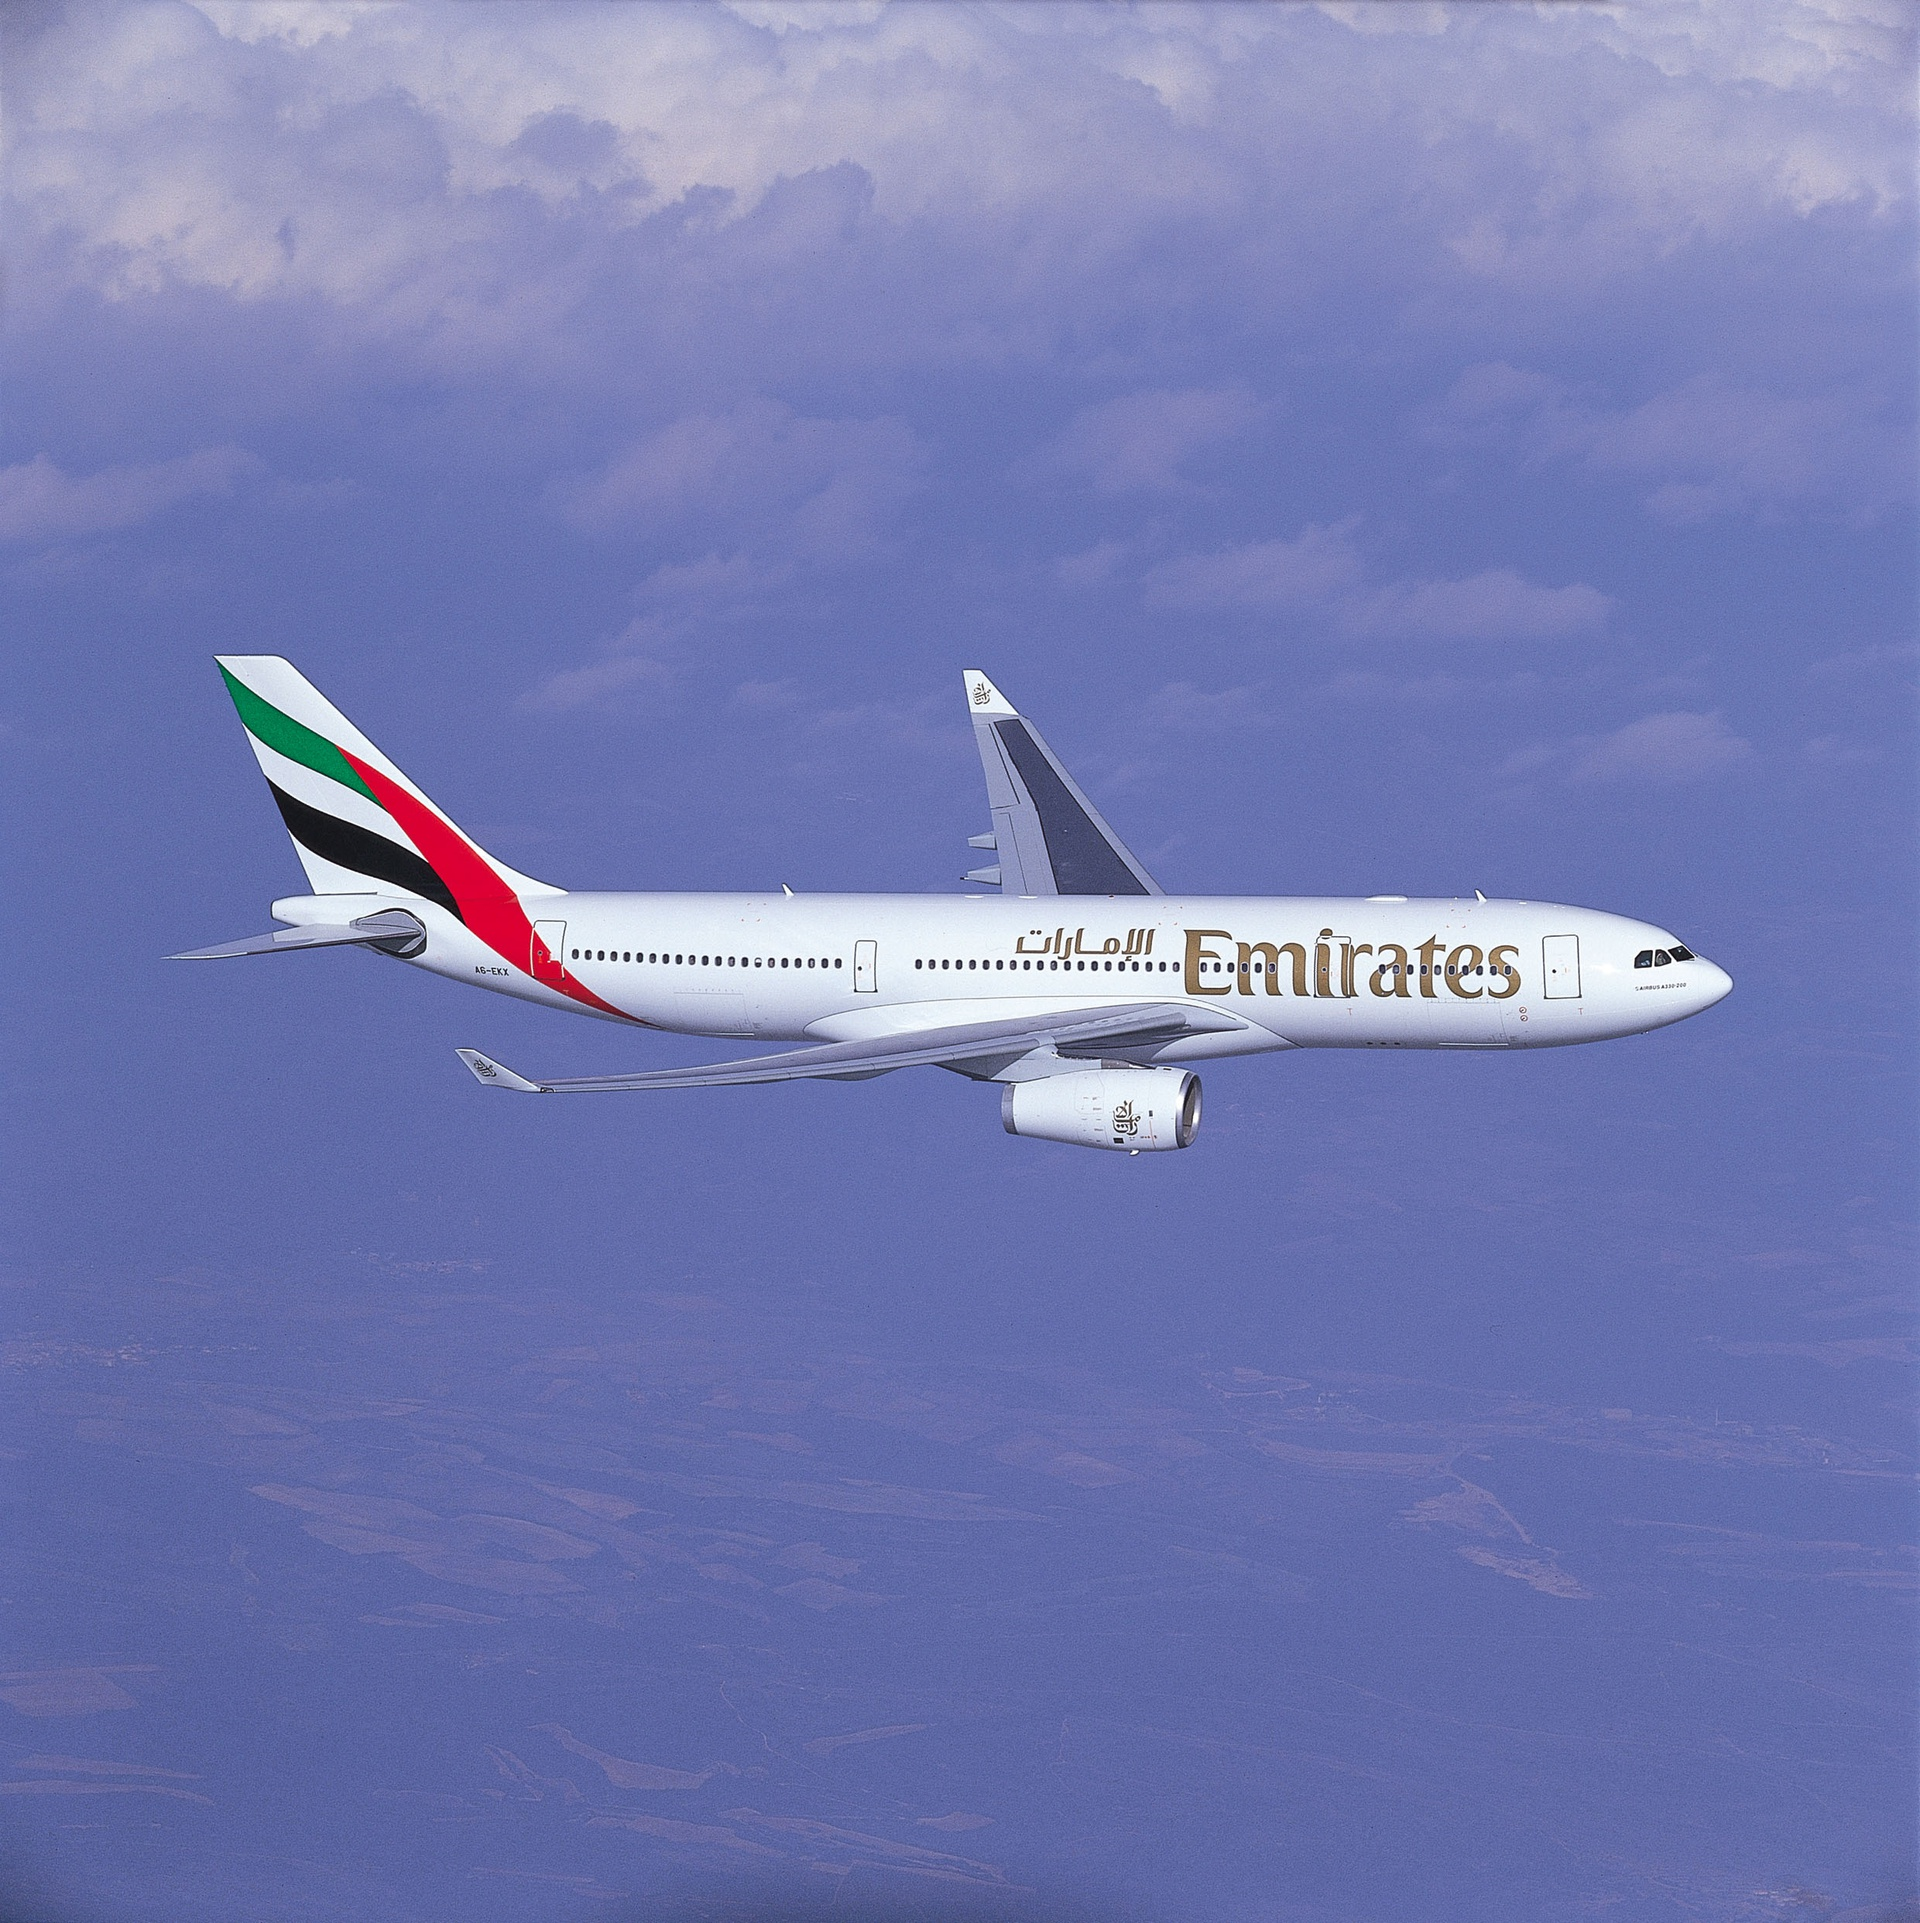 Emirates' four weekly flights to Erbil will operate on  Monday, Tuesday, Thursday and Saturday, served by an A330-200 aircraft in a combination of two class and three class configurations.